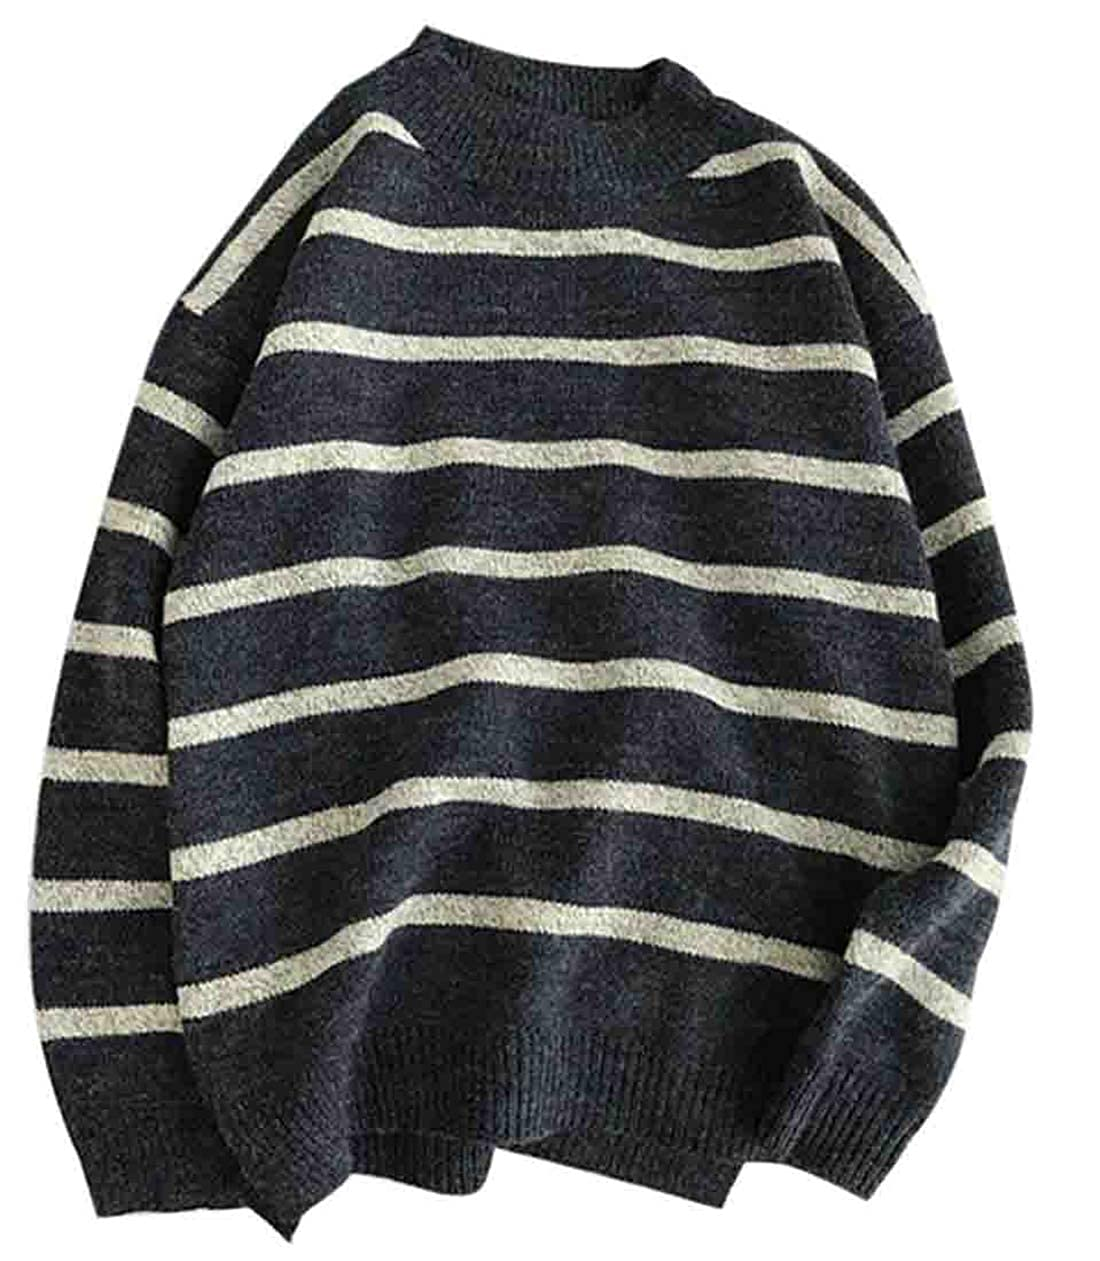 YYear Mens Winter Casual Striped Crew Neck Patchwork Long Sleeve Knit Sweater